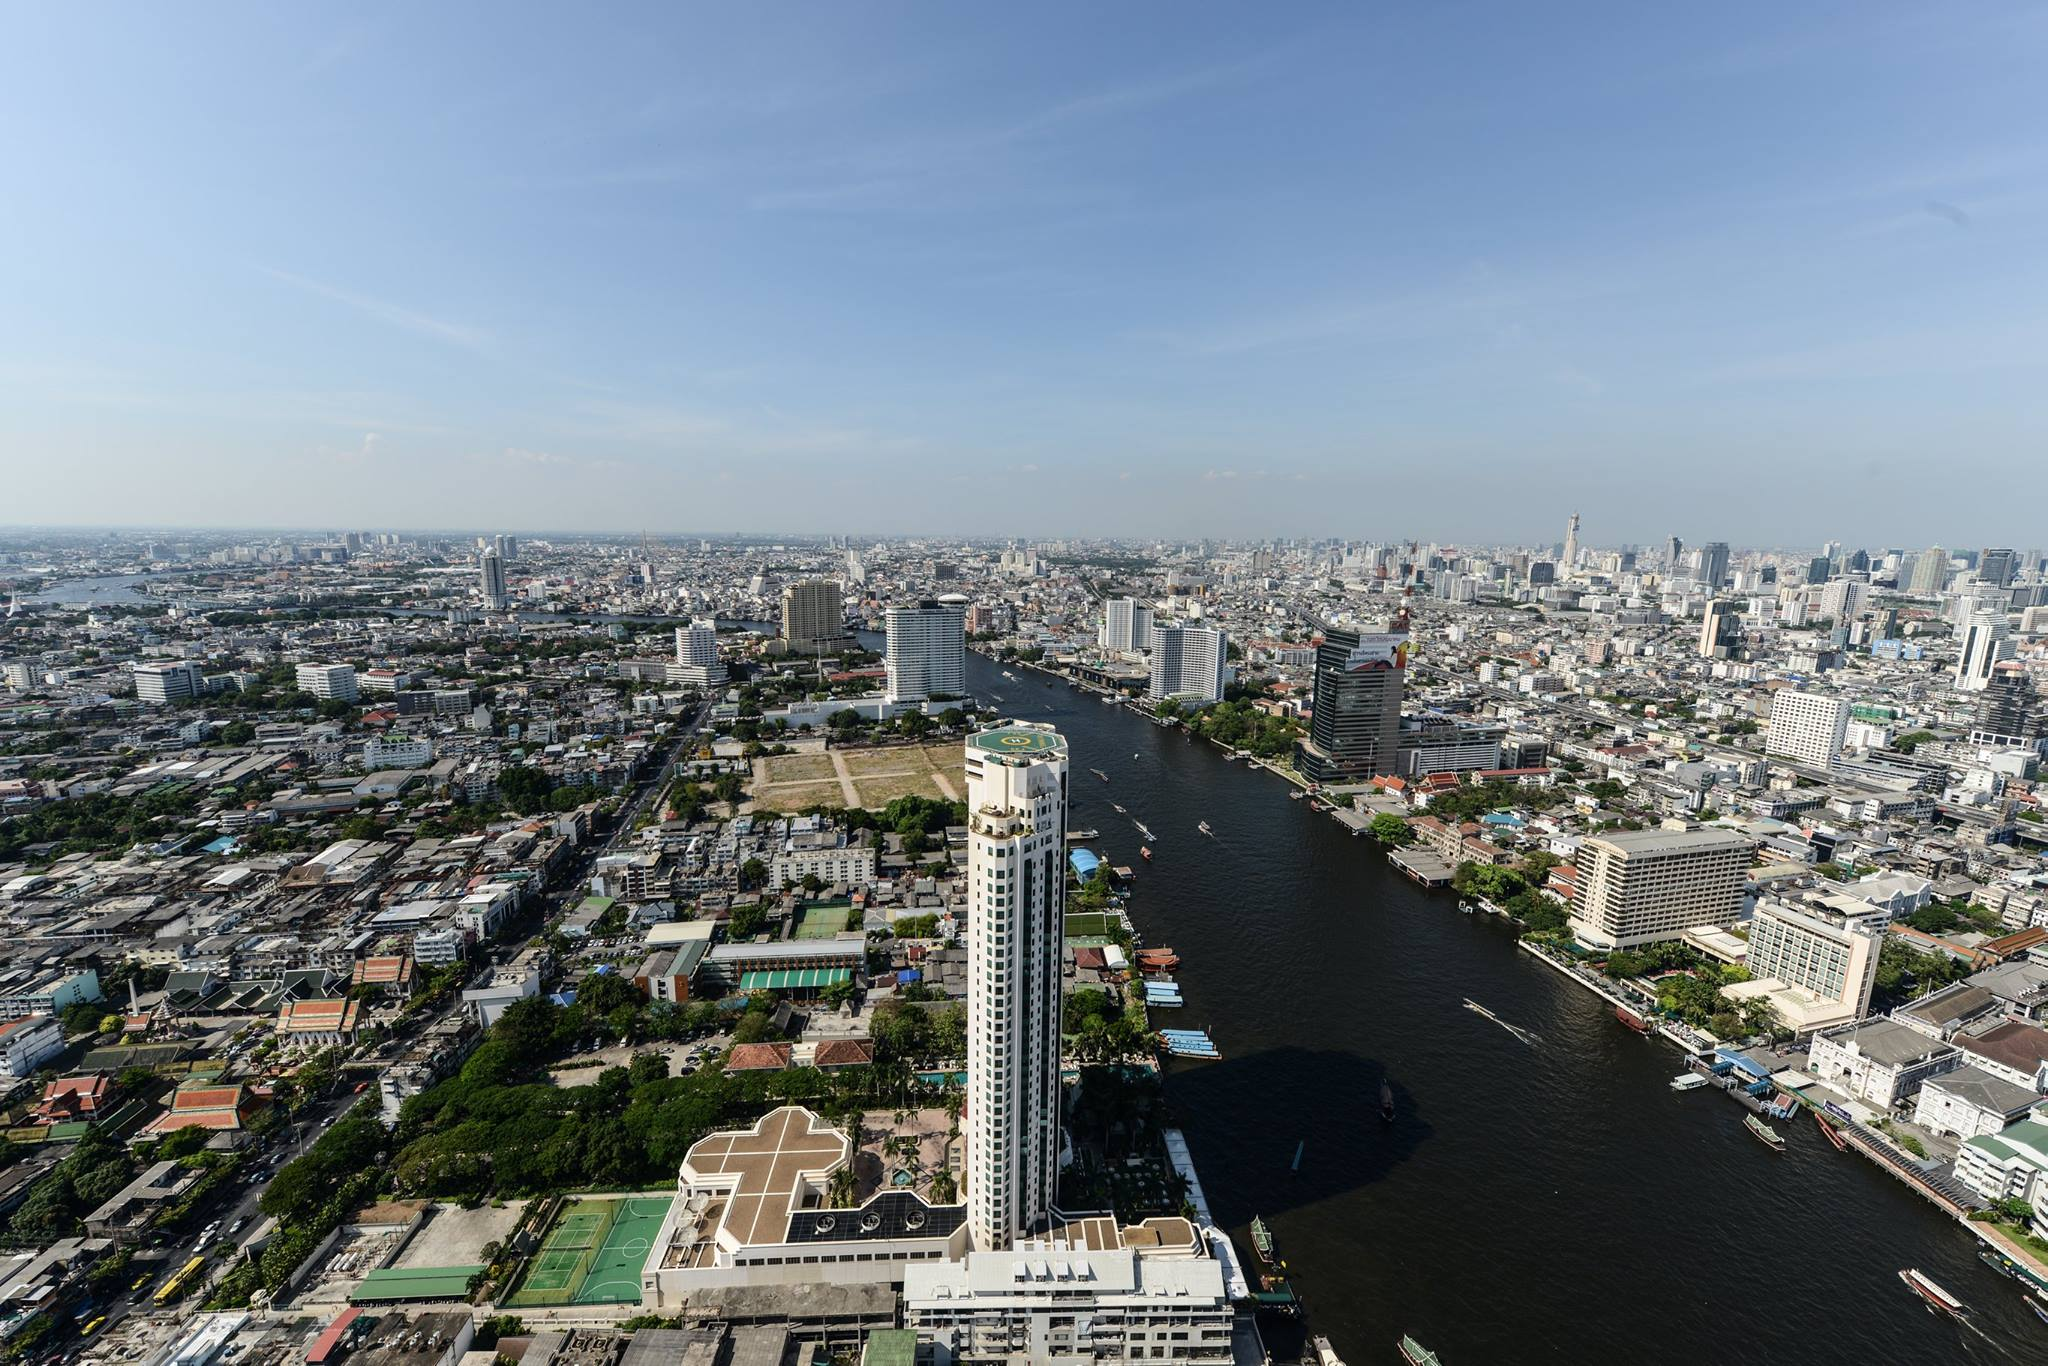 VisionQuest Thailand Property Agency's The River Penthouse 942sq.m spectacular 180 degrees river and city views 15